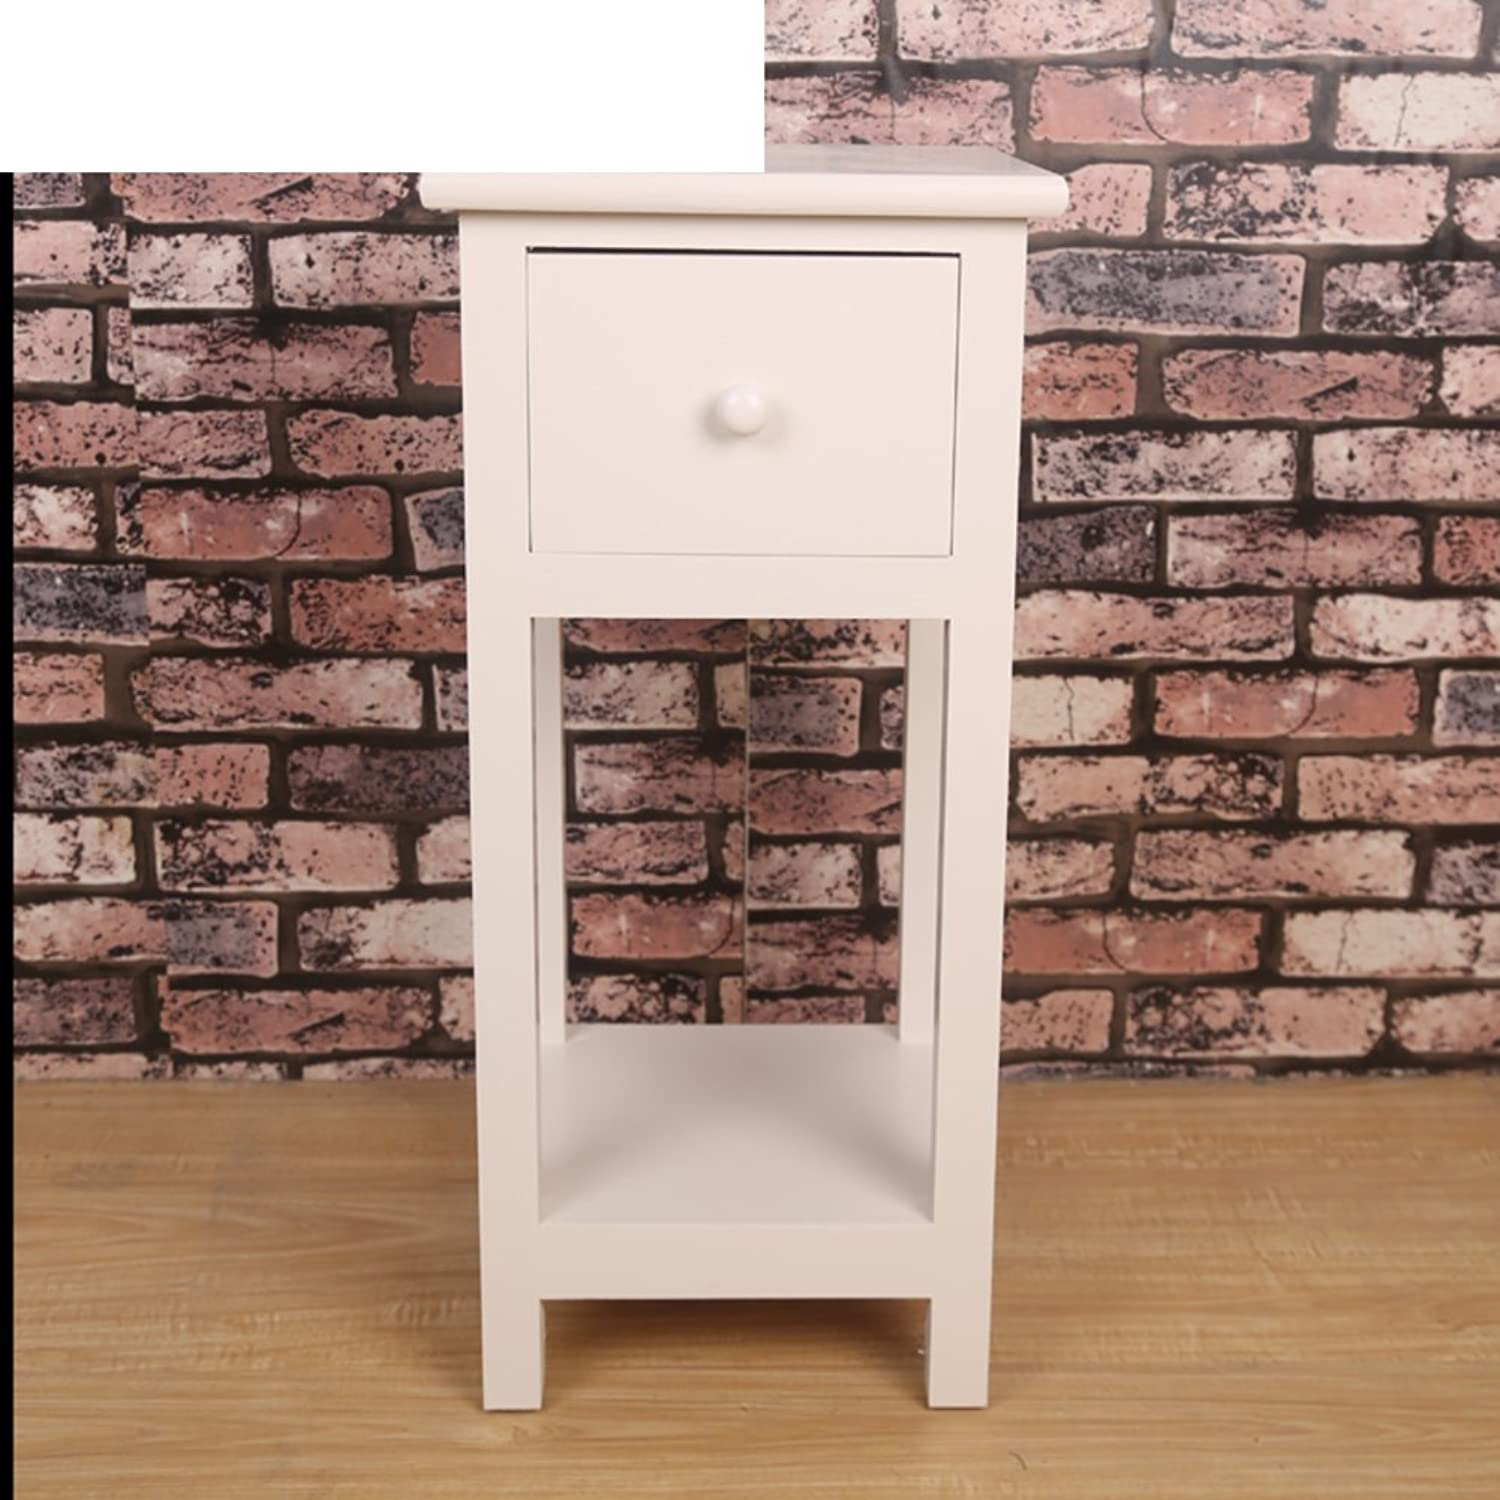 Little Bedside Table Solid Wood Widened Simple Small Cabinet Bedroom Cabinet Narrow Cabinet Continental Bed Cabinet-H 28x28x60cm(11x11x24)